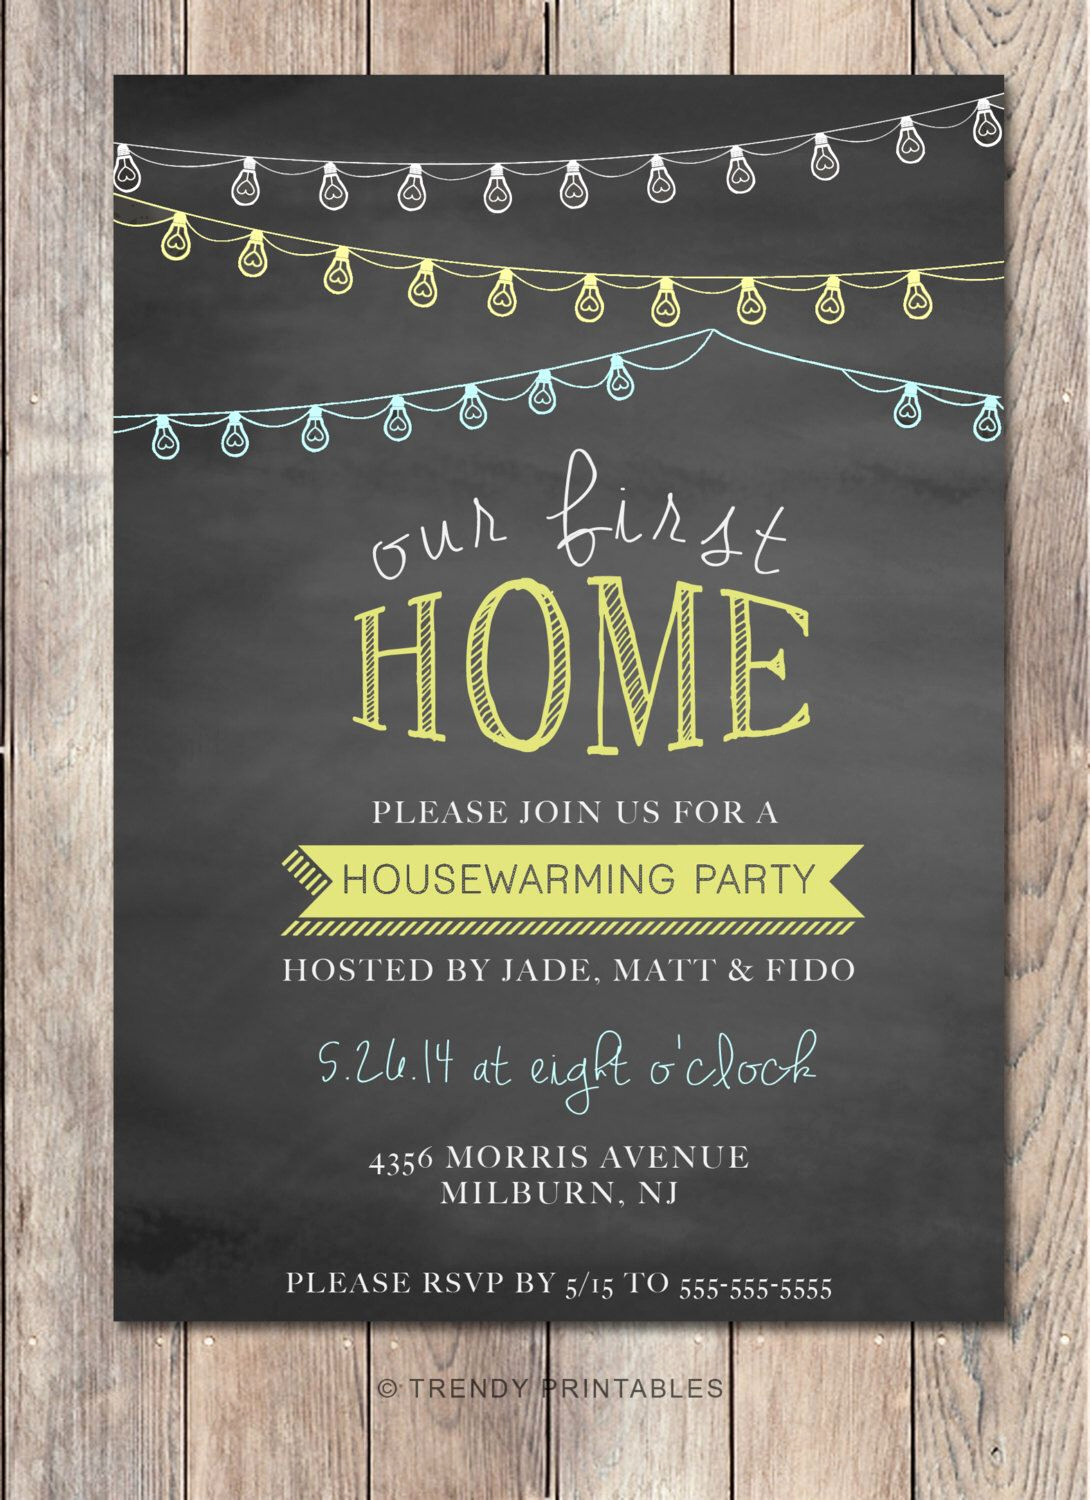 House Warming Party Invitation Ideas Fresh Housewarming Party Invitation Housewarming Invitation